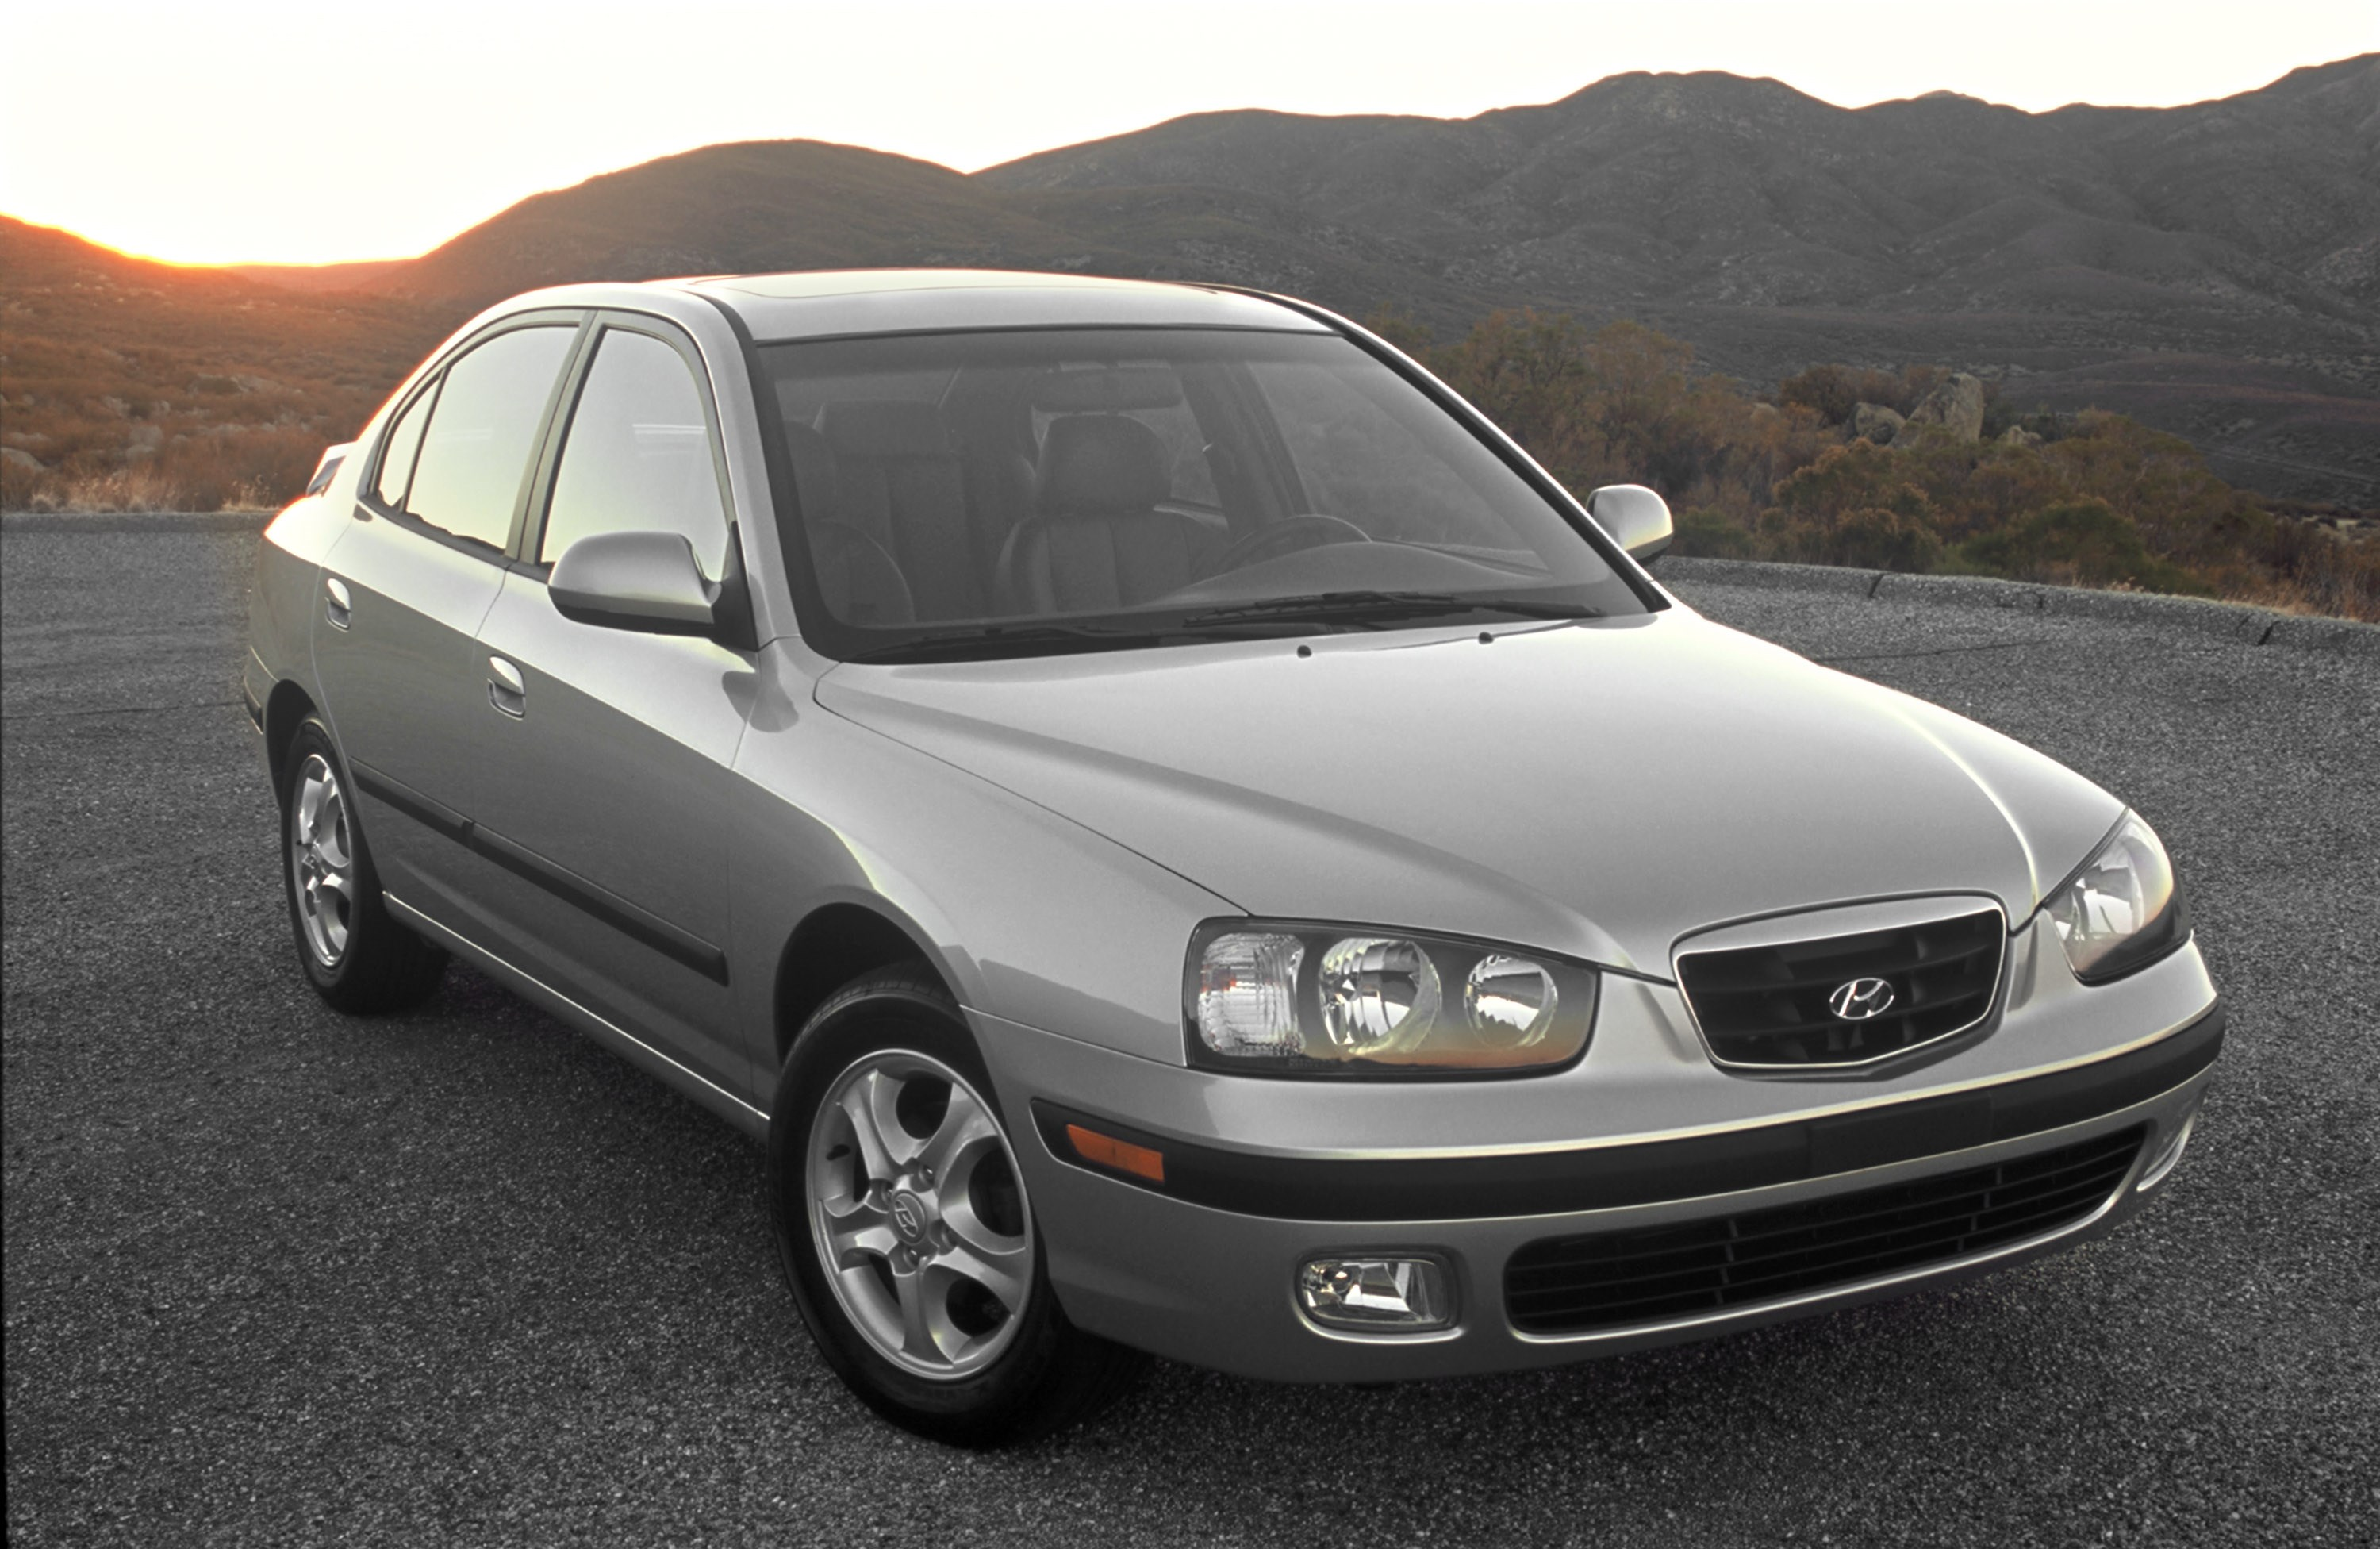 2003 Hyundai Elantra Gt 4 Door Hd Pictures